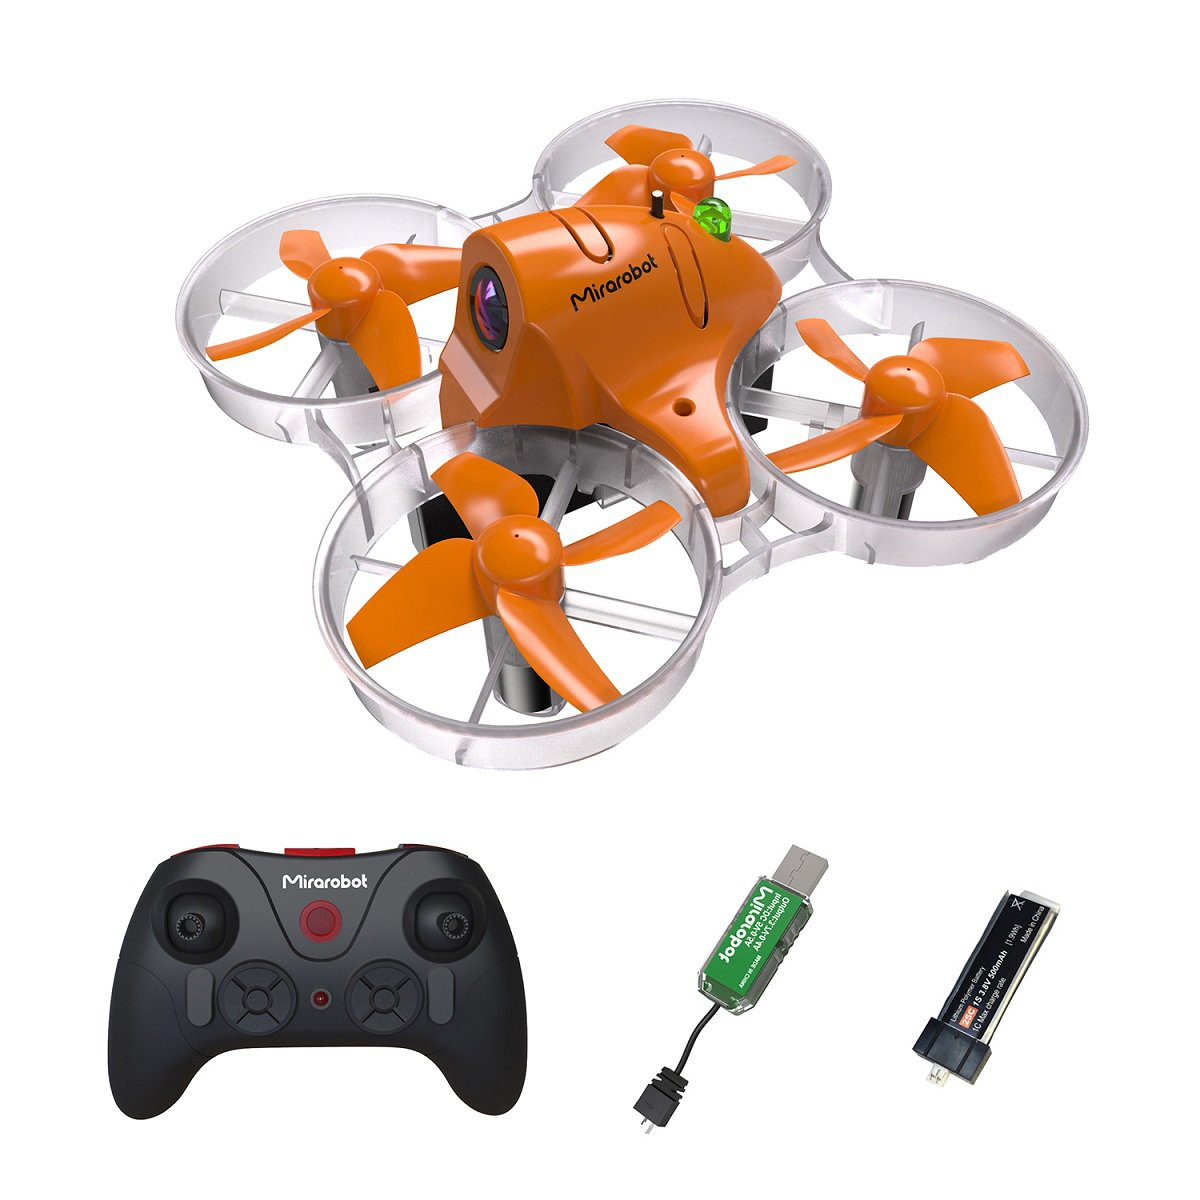 Mirarobot S85 FPV Drone Racing 120M Micro Quadcopter Tiny Whoop, 5.8G 40CH 6-Axis 8.5mm Motor Powerful, High -Voltage Battery, Automatically Increase Stability RTF